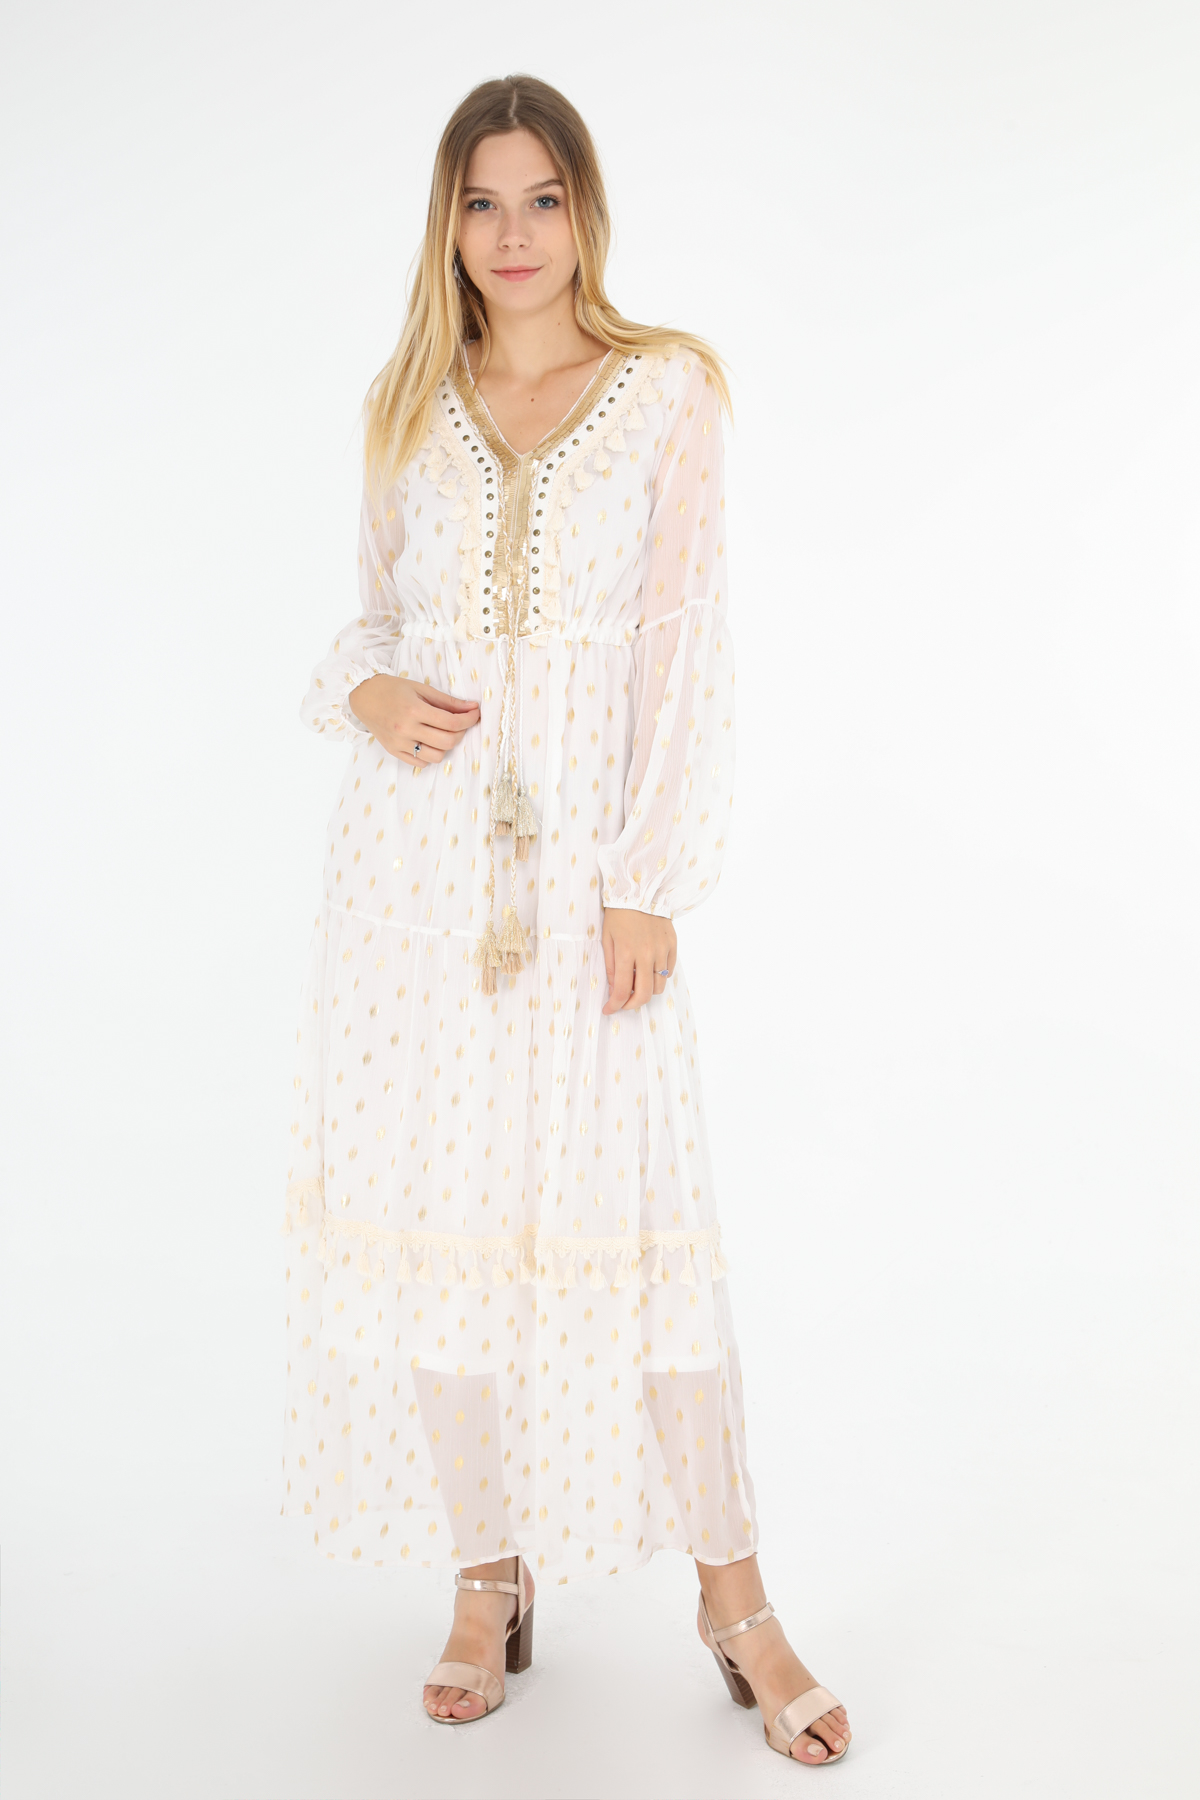 Robes longues Femme Blanc Golden Live 8836 #c eFashion Paris